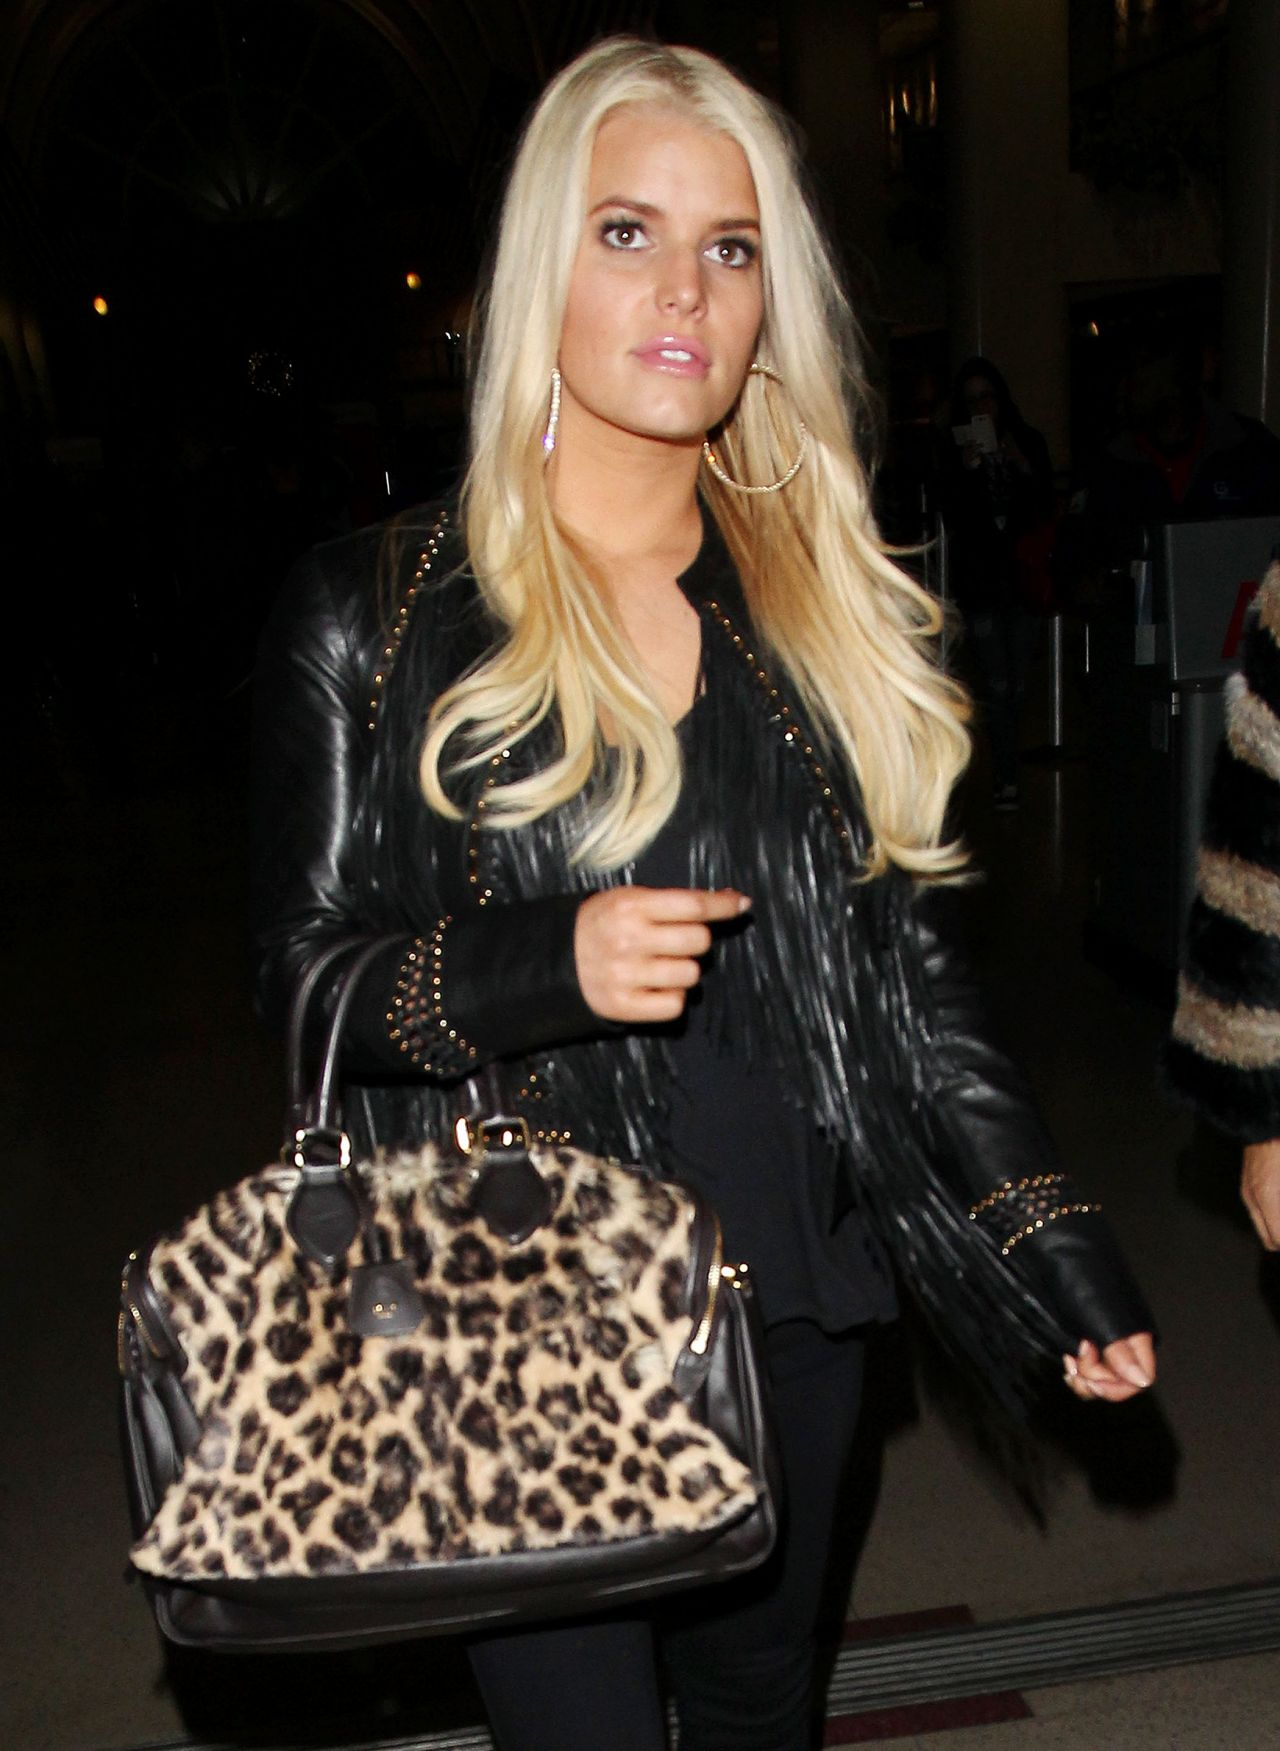 Jessica Simpson at the Los Angeles International Airport - January 2014